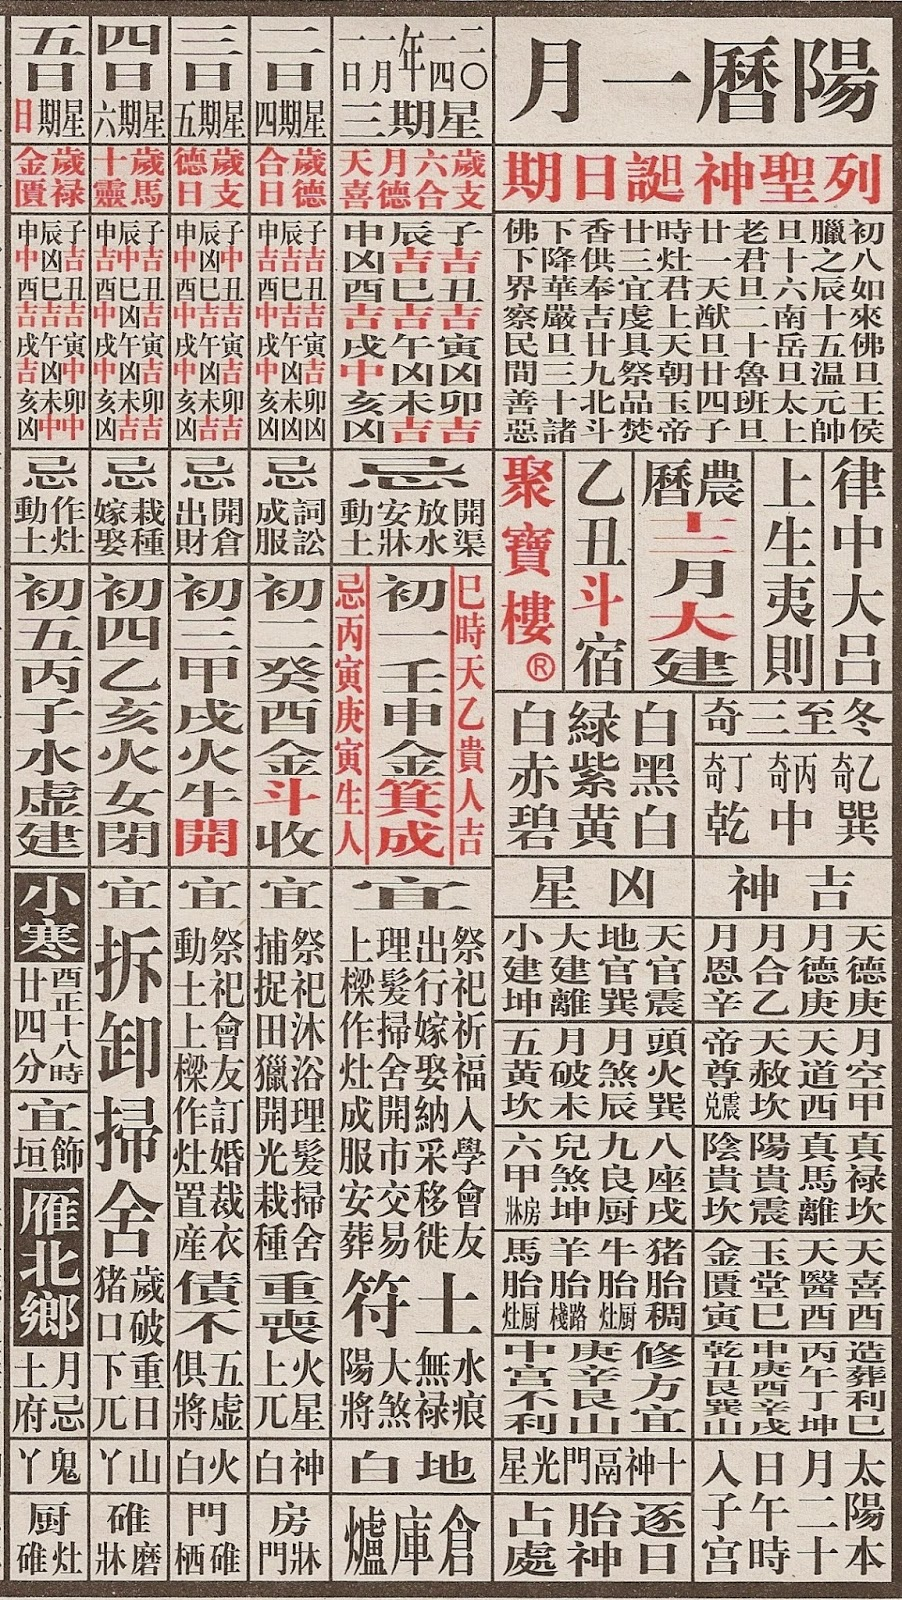 2014 Chinese Lunar Calendar/page/2 | Search Results | Calendar 2015